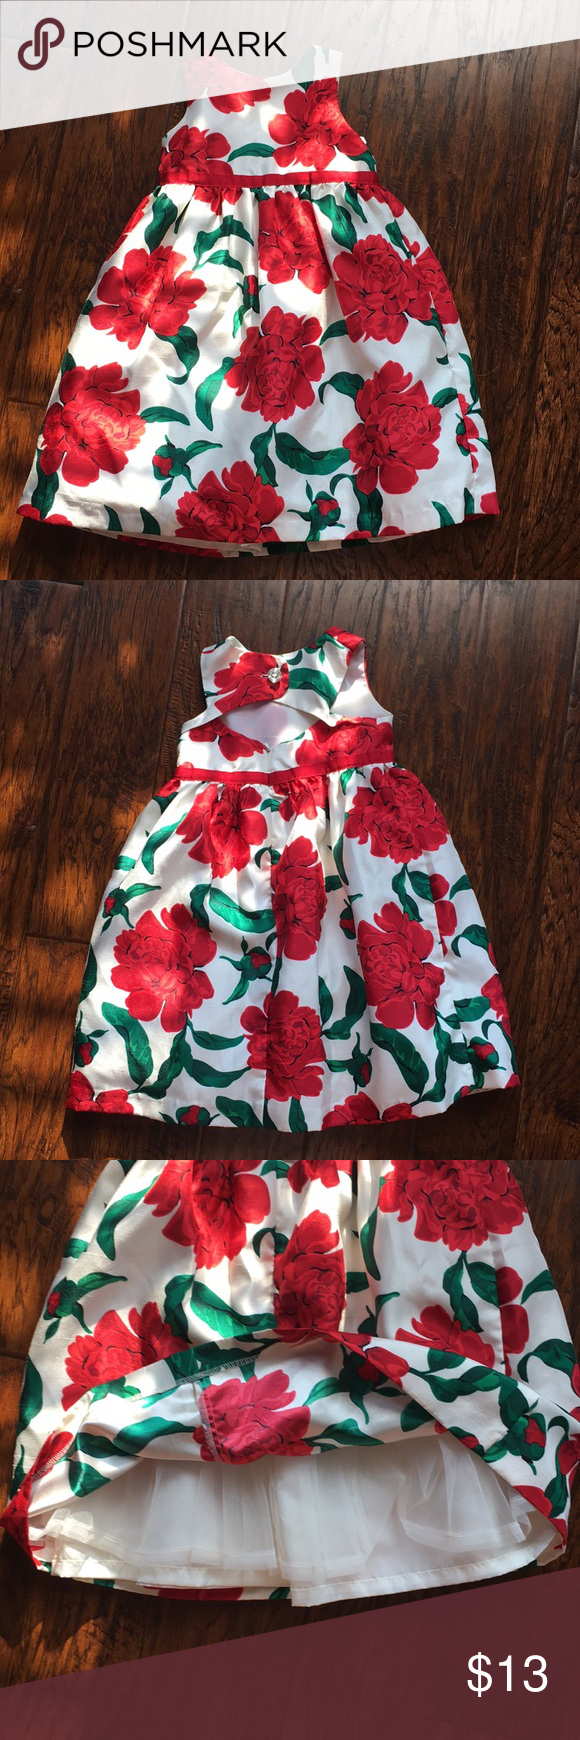 Gymboree Party Dress Girls 4t I Loved These Colors Original Owner And Gently Used Gymboree Dresses Formal Girls Party Dress Clothes Design Girls Dresses [ 1740 x 580 Pixel ]